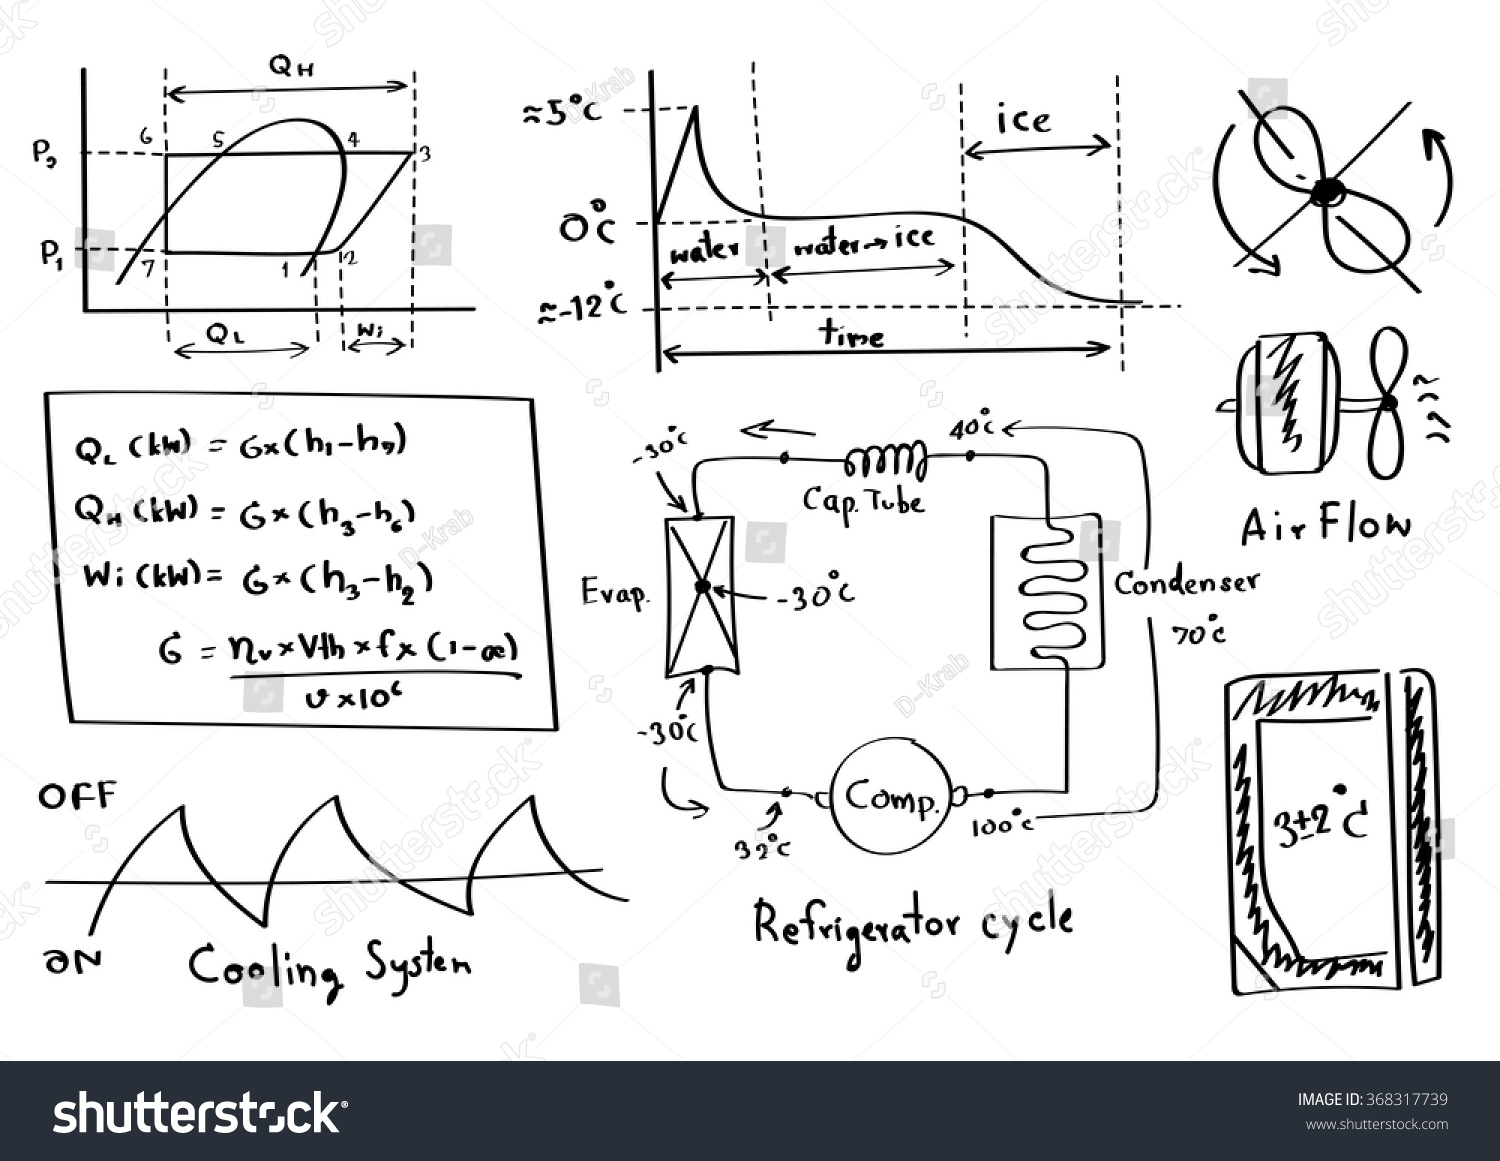 Refrigeration cycle mollier diagram refrigeration theory stock refrigeration cycle mollier diagram and refrigeration theory by doodle writing vector illustration pooptronica Image collections